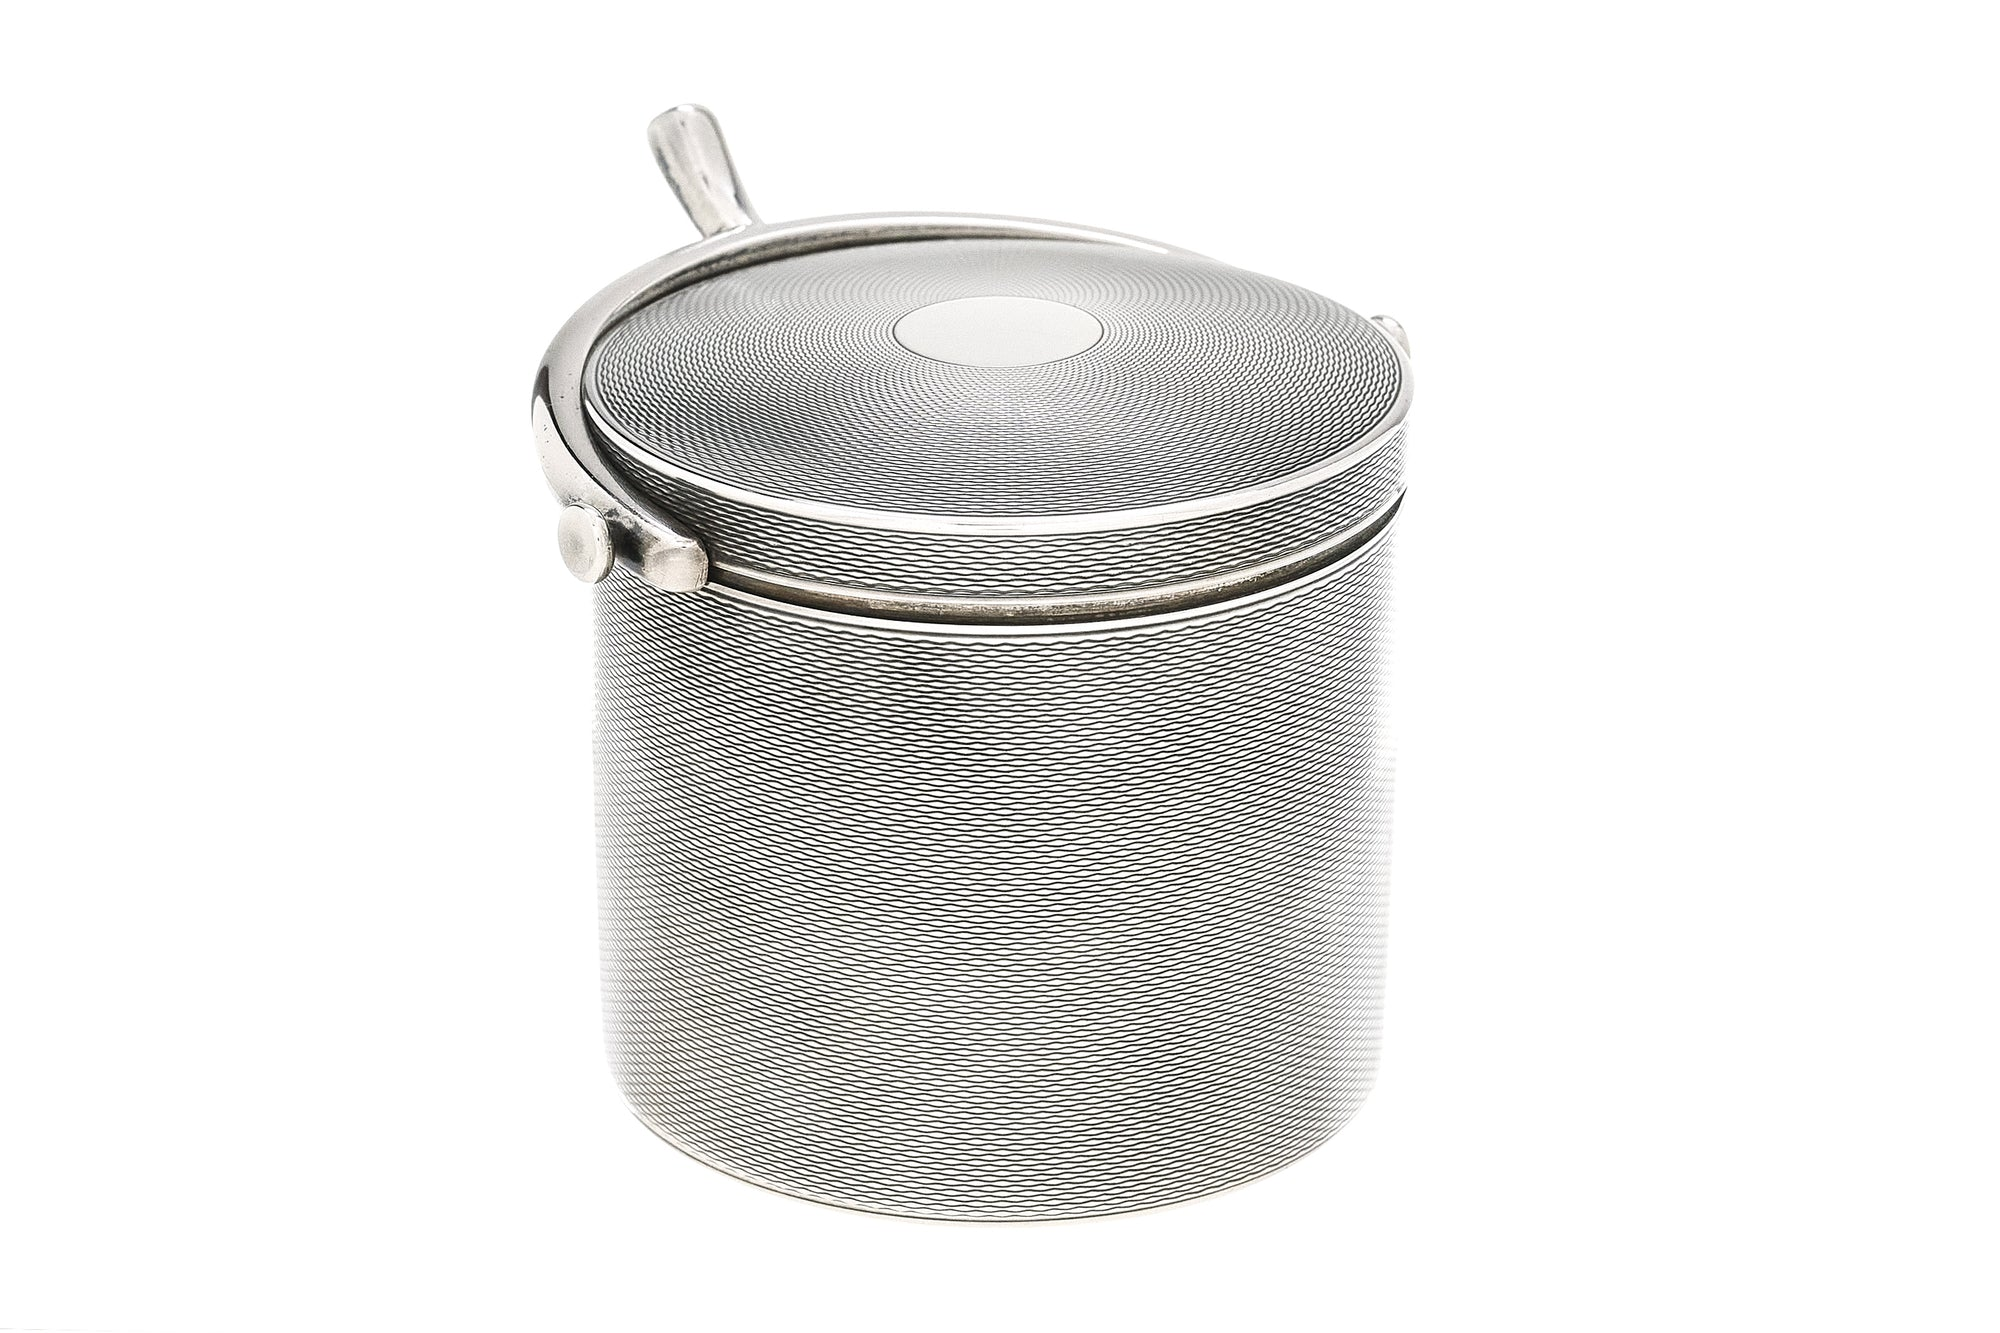 Hermes Sterling Silver Cylinder Box, Horse Shoe handle